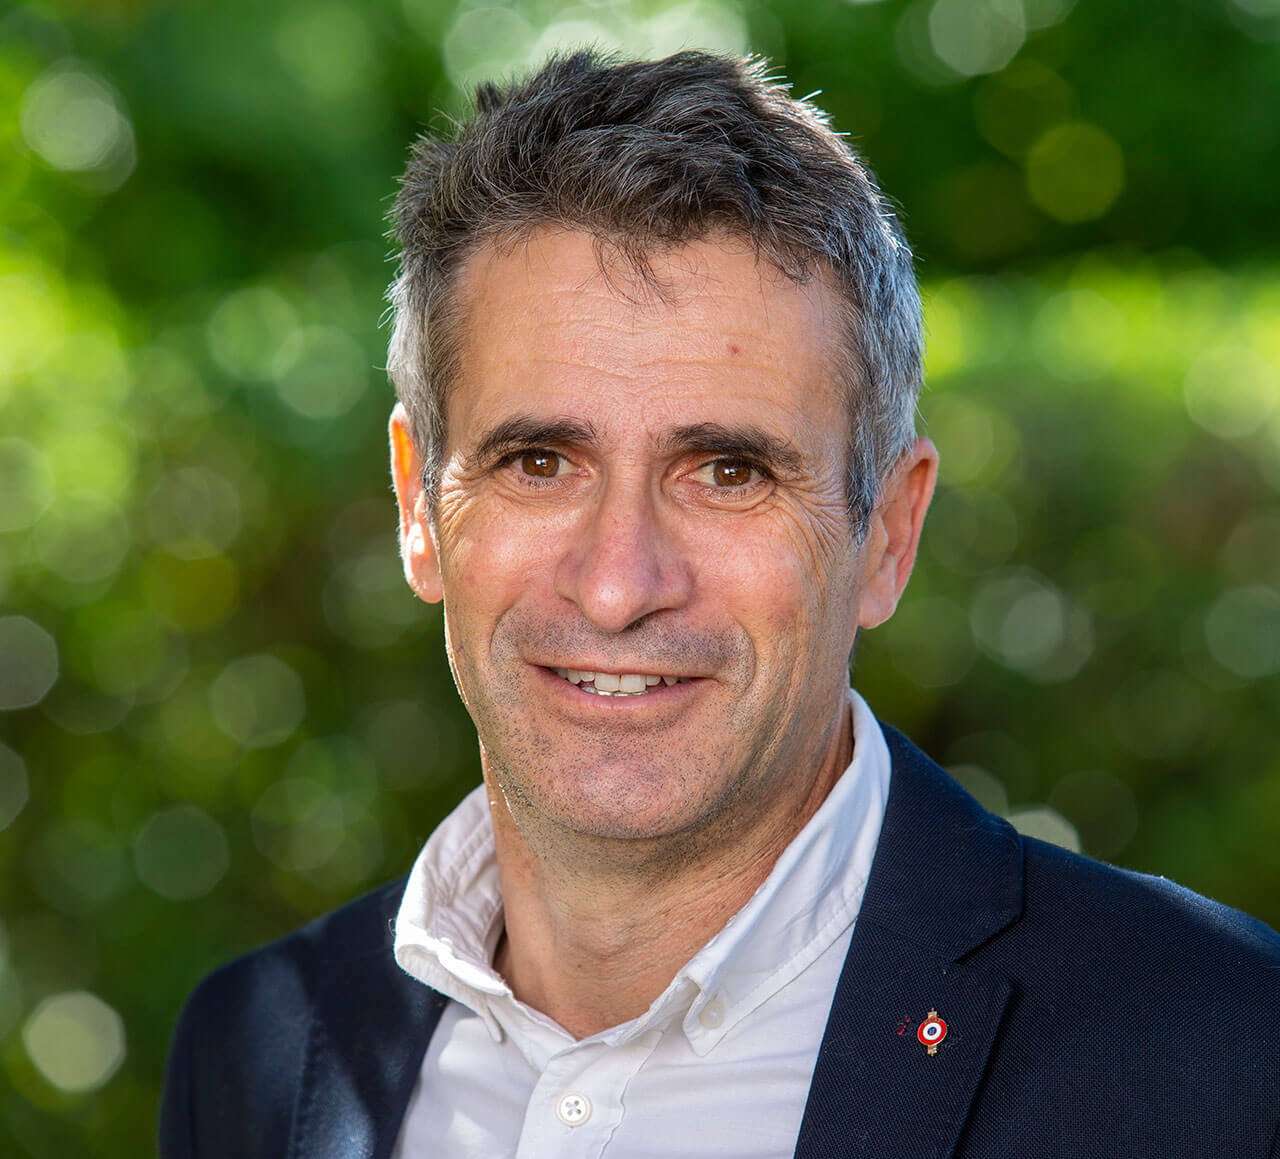 Xavier DANEY maire d'Ares